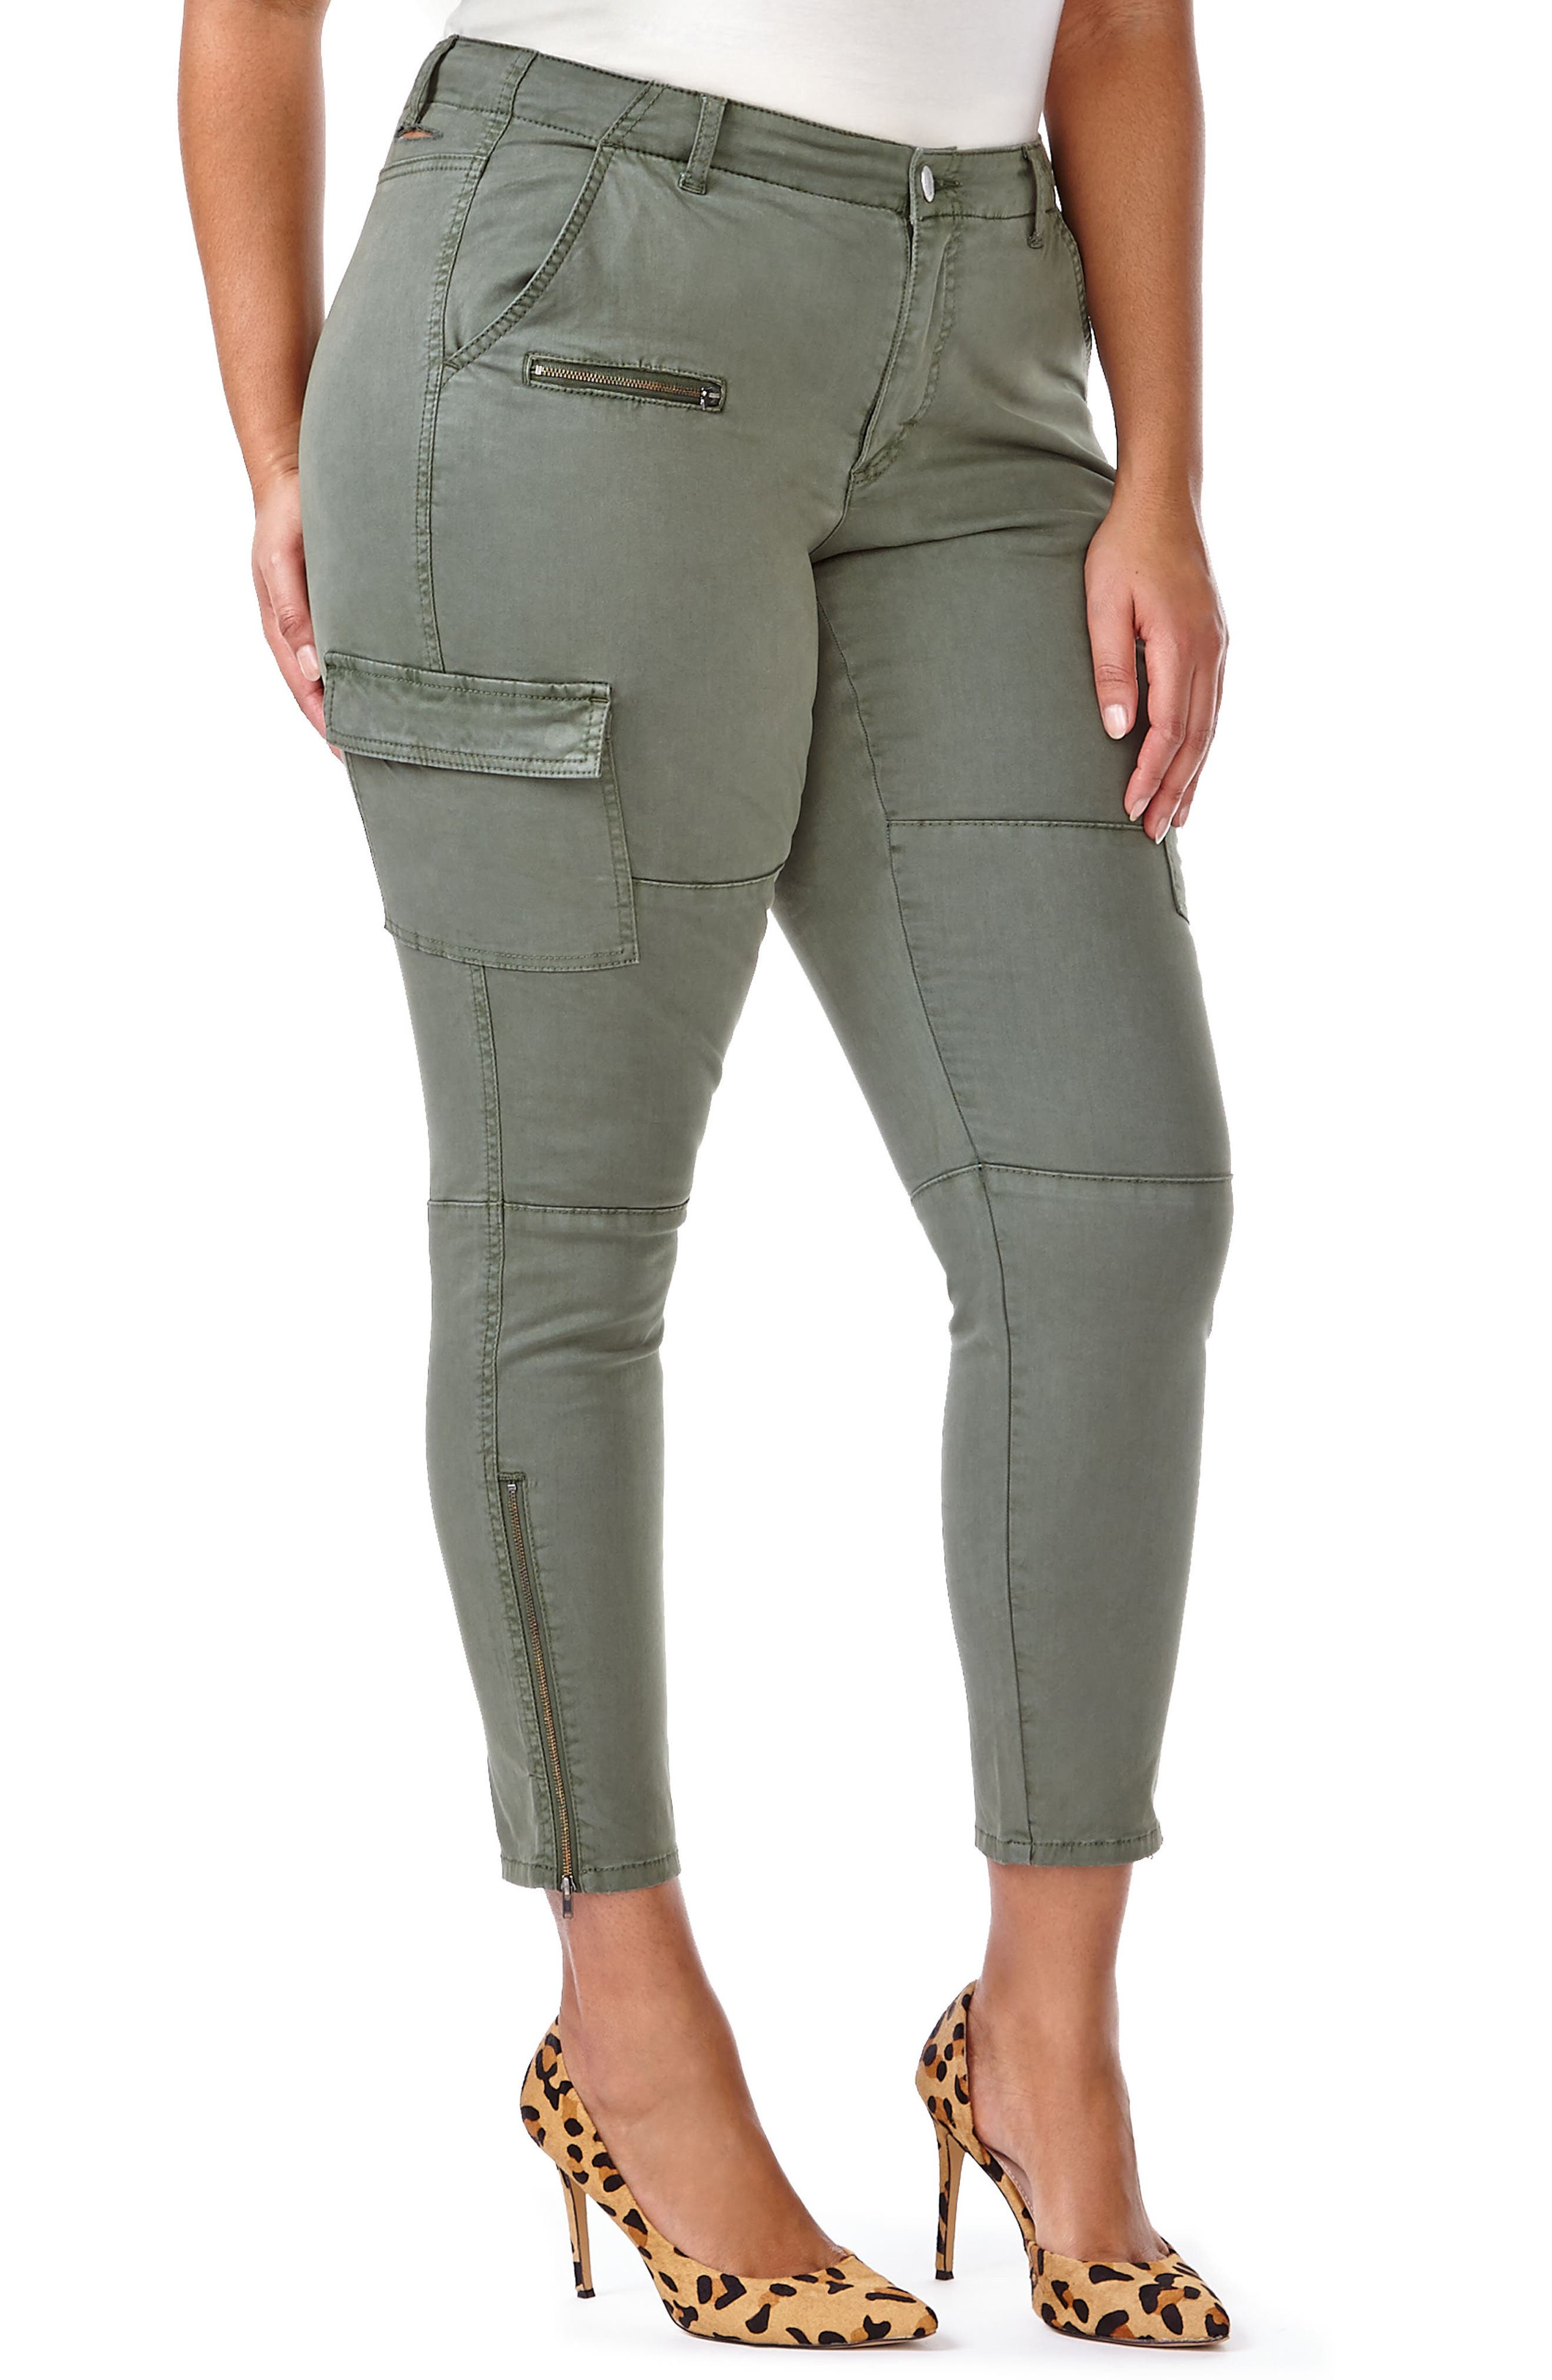 ADDITION ELLE LOVE AND LEGEND Cargo Pants